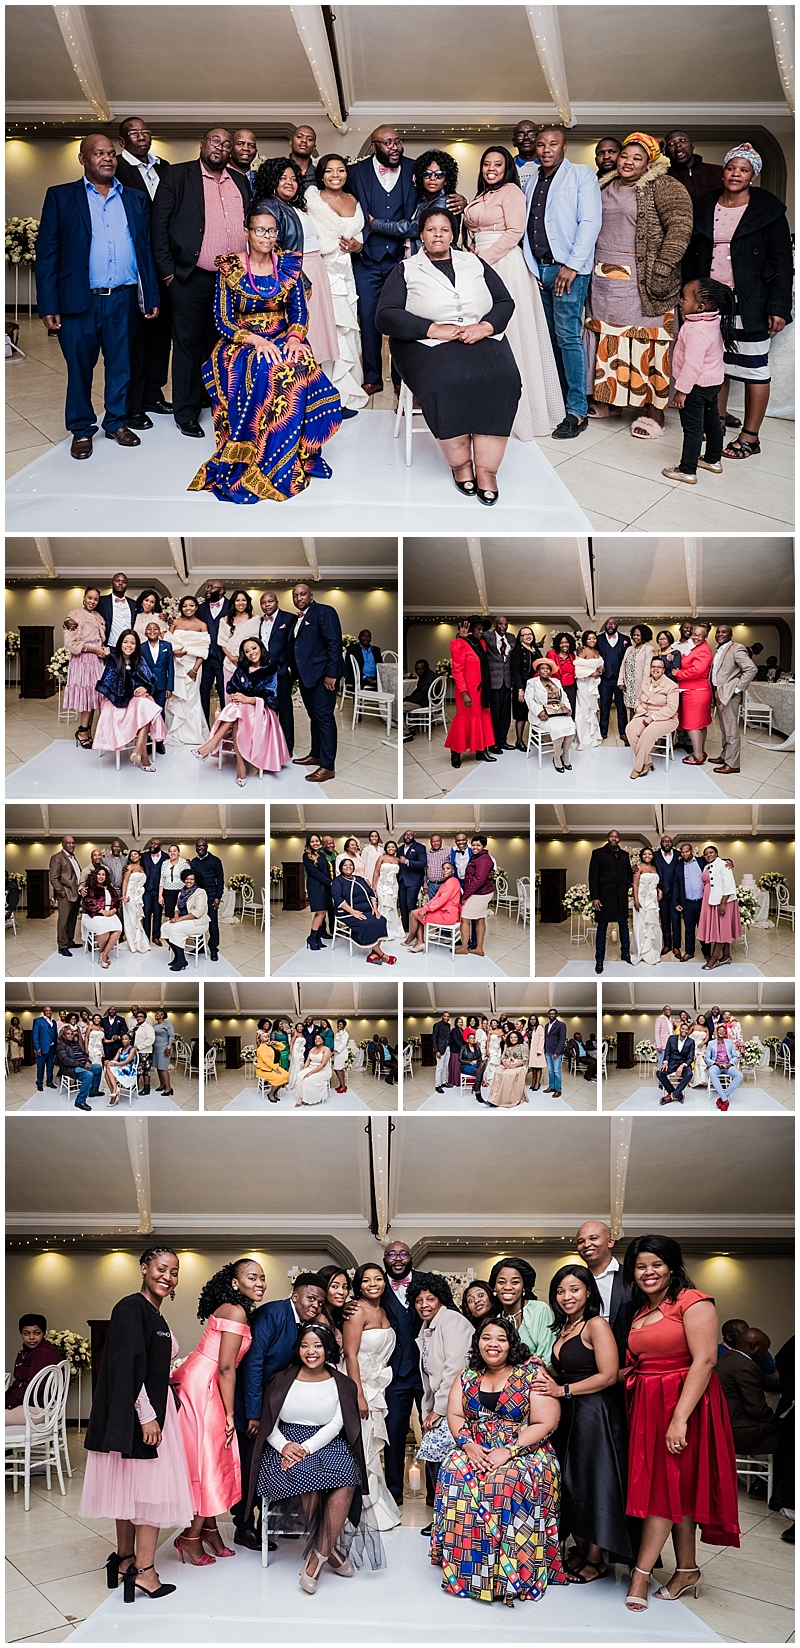 AlexanderSmith-665_AlexanderSmith Best Wedding Photographer-1.jpg